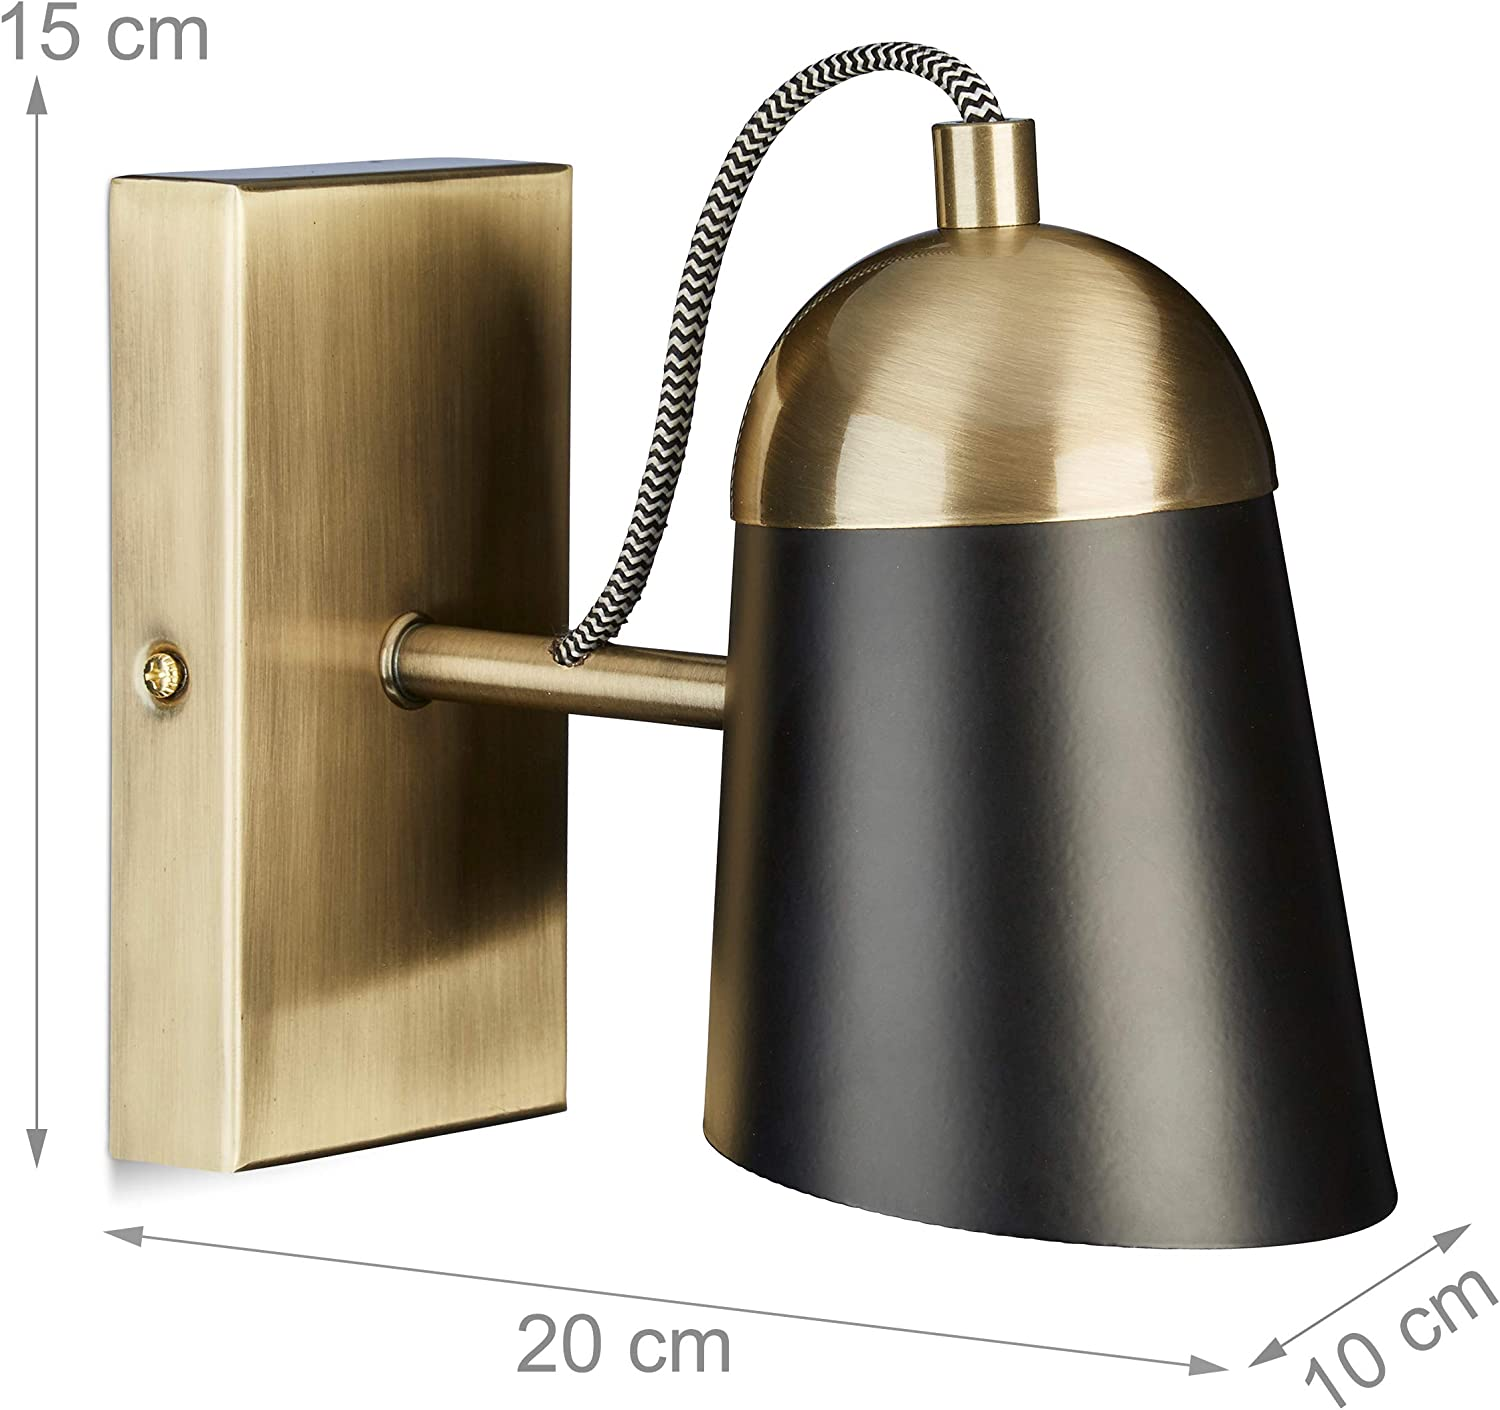 1 Socket Brown Silver Relaxdays Half-Round Wall Lamp E14 HxWxD: 17 x 25 x 12.5 cm Linen 10028062/_93 Iron Two-Sided